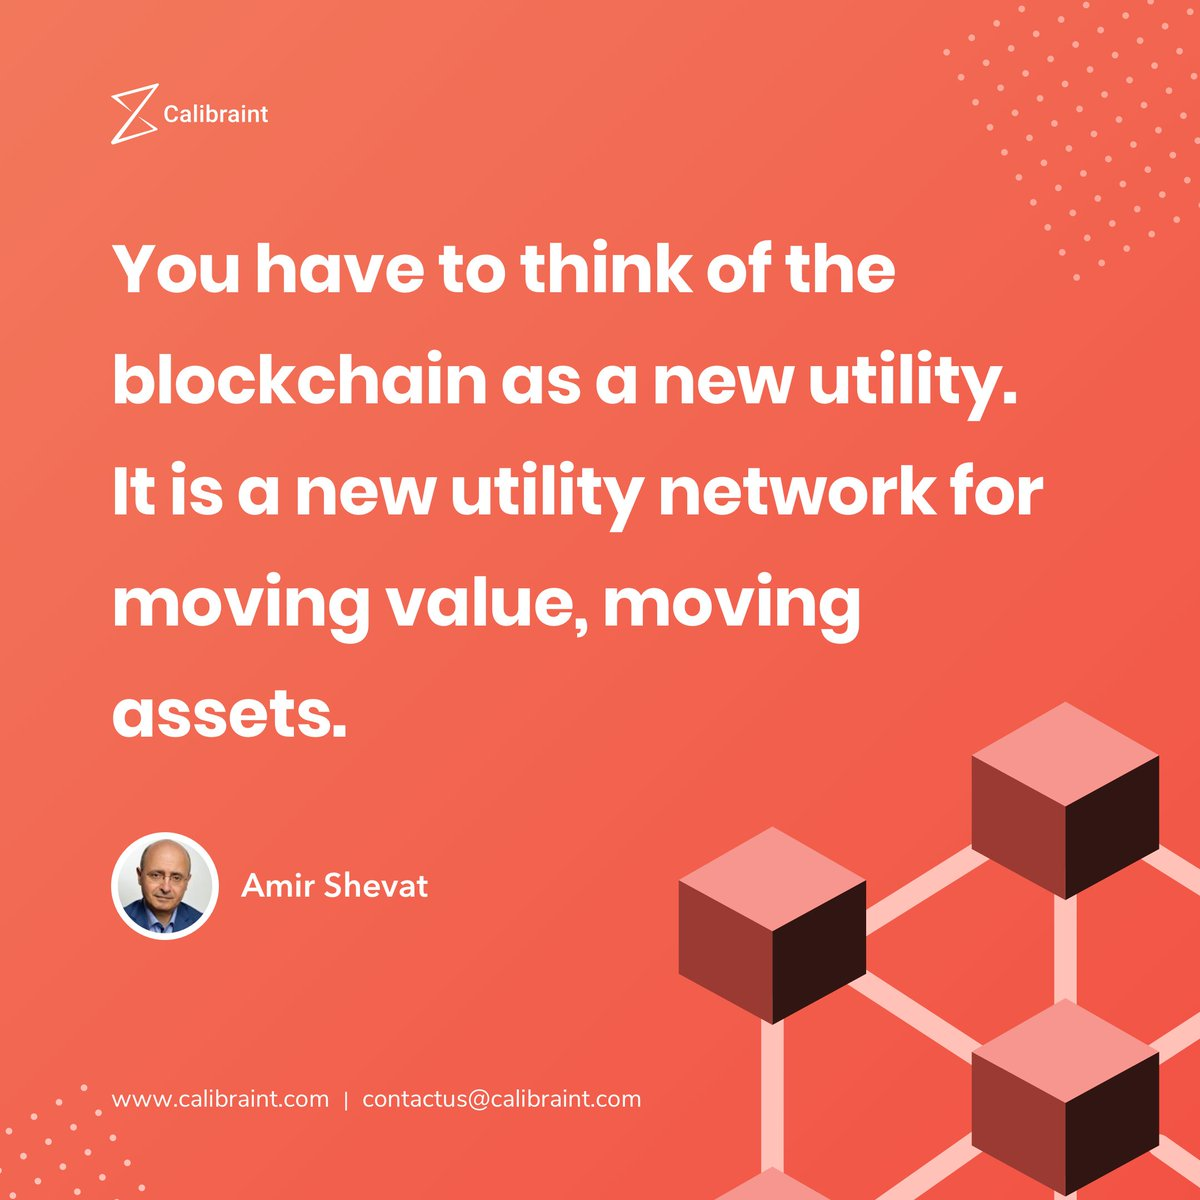 Move your values and assets with this new utility. #Calibraint https://www.calibraint.com/services/blockchain-services …  #blockchaindevelopers #cryptocurrencymarket #Bitcoin  #ico #customdesigns #devcommunity #outsourcingservices #outsourcingit #remoteteam #remoteworkforce #remoteworkerspic.twitter.com/6ZMF93e7EO